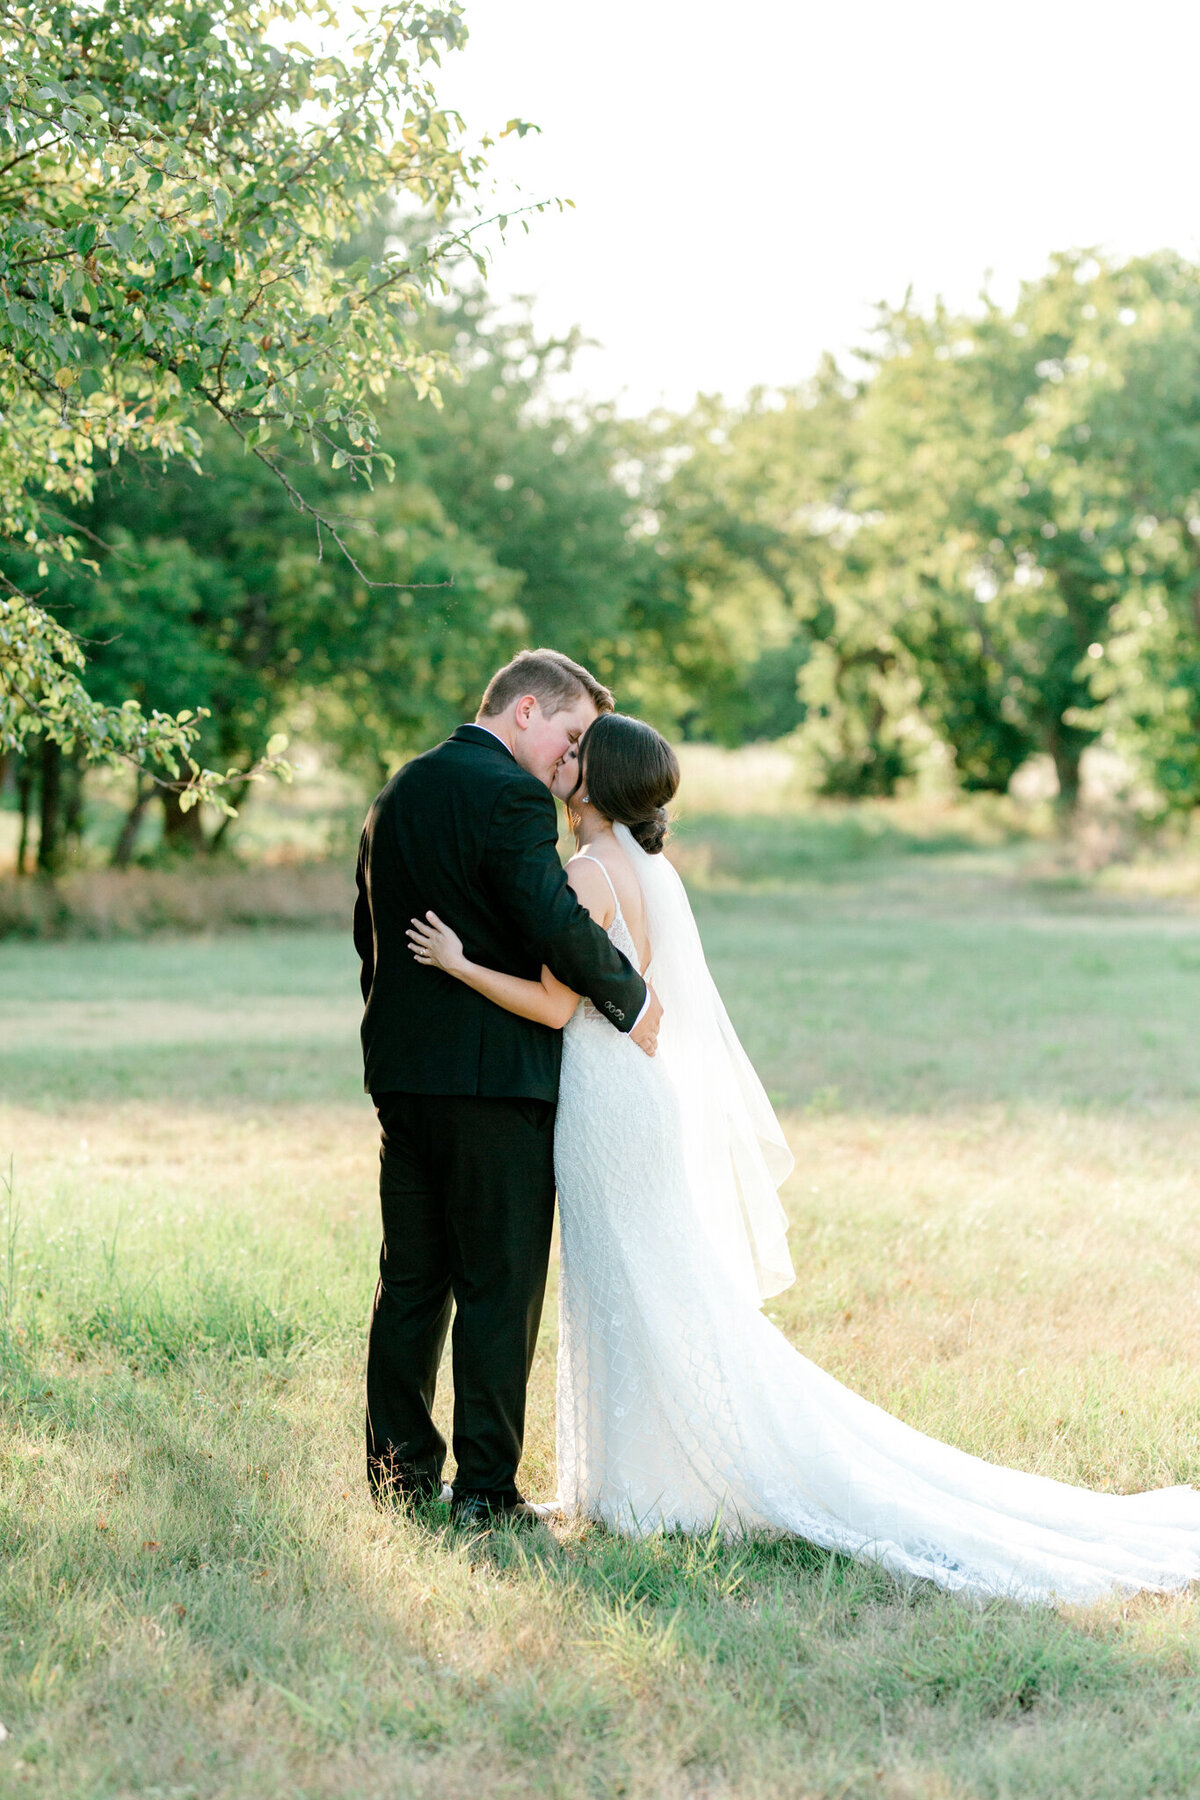 Anna & Billy's Wedding at The Nest at Ruth Farms | Dallas Wedding Photographer | Sami Kathryn Photography-166